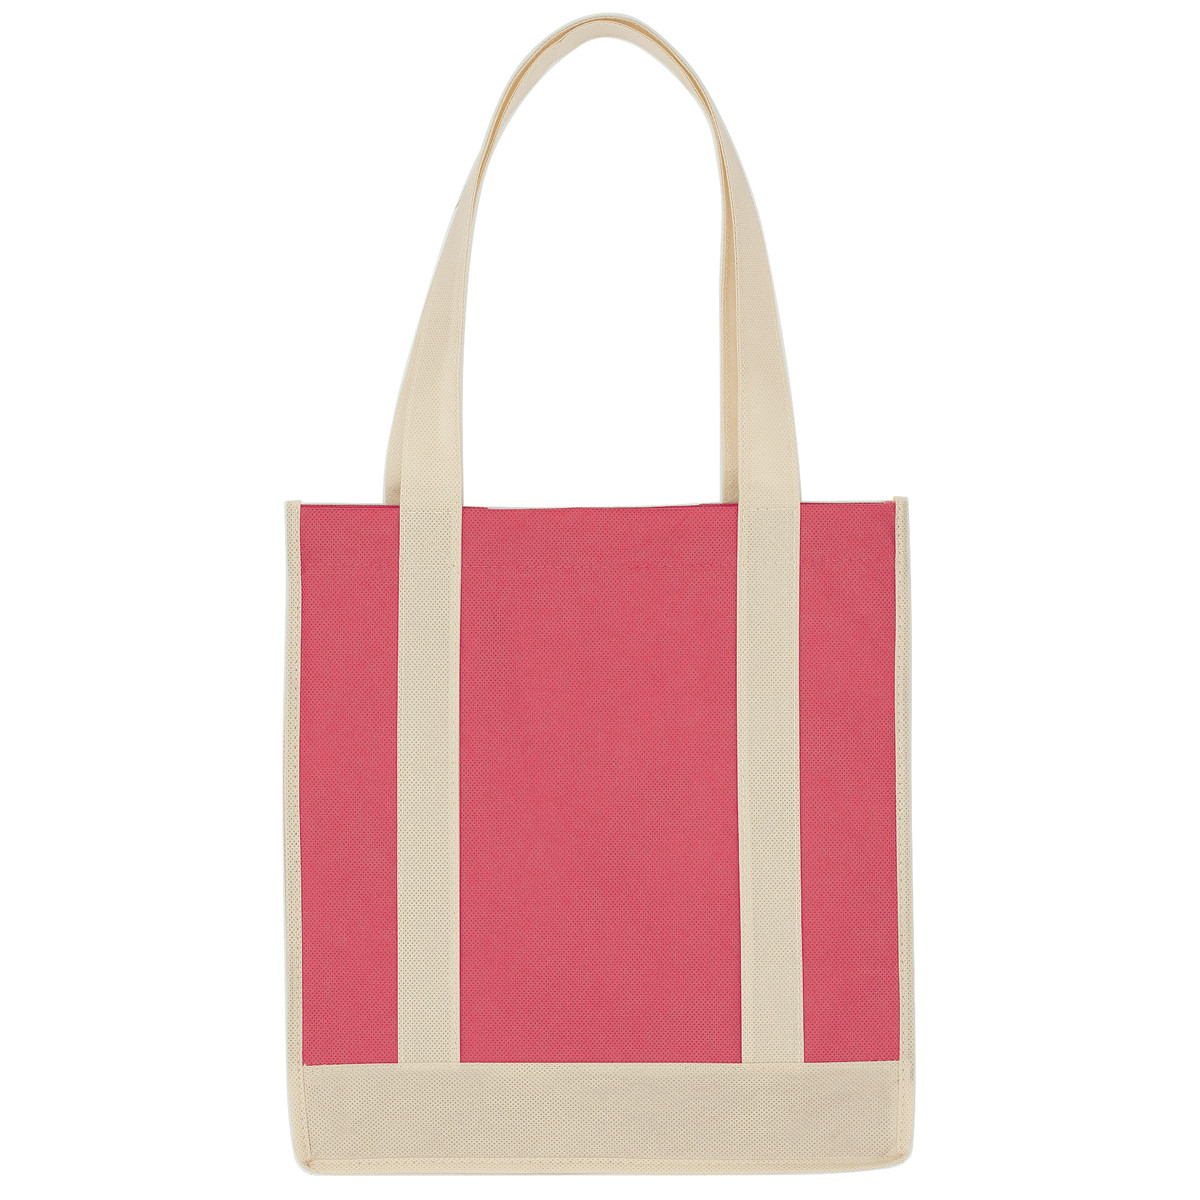 Fashion flower design promotional shopping bag